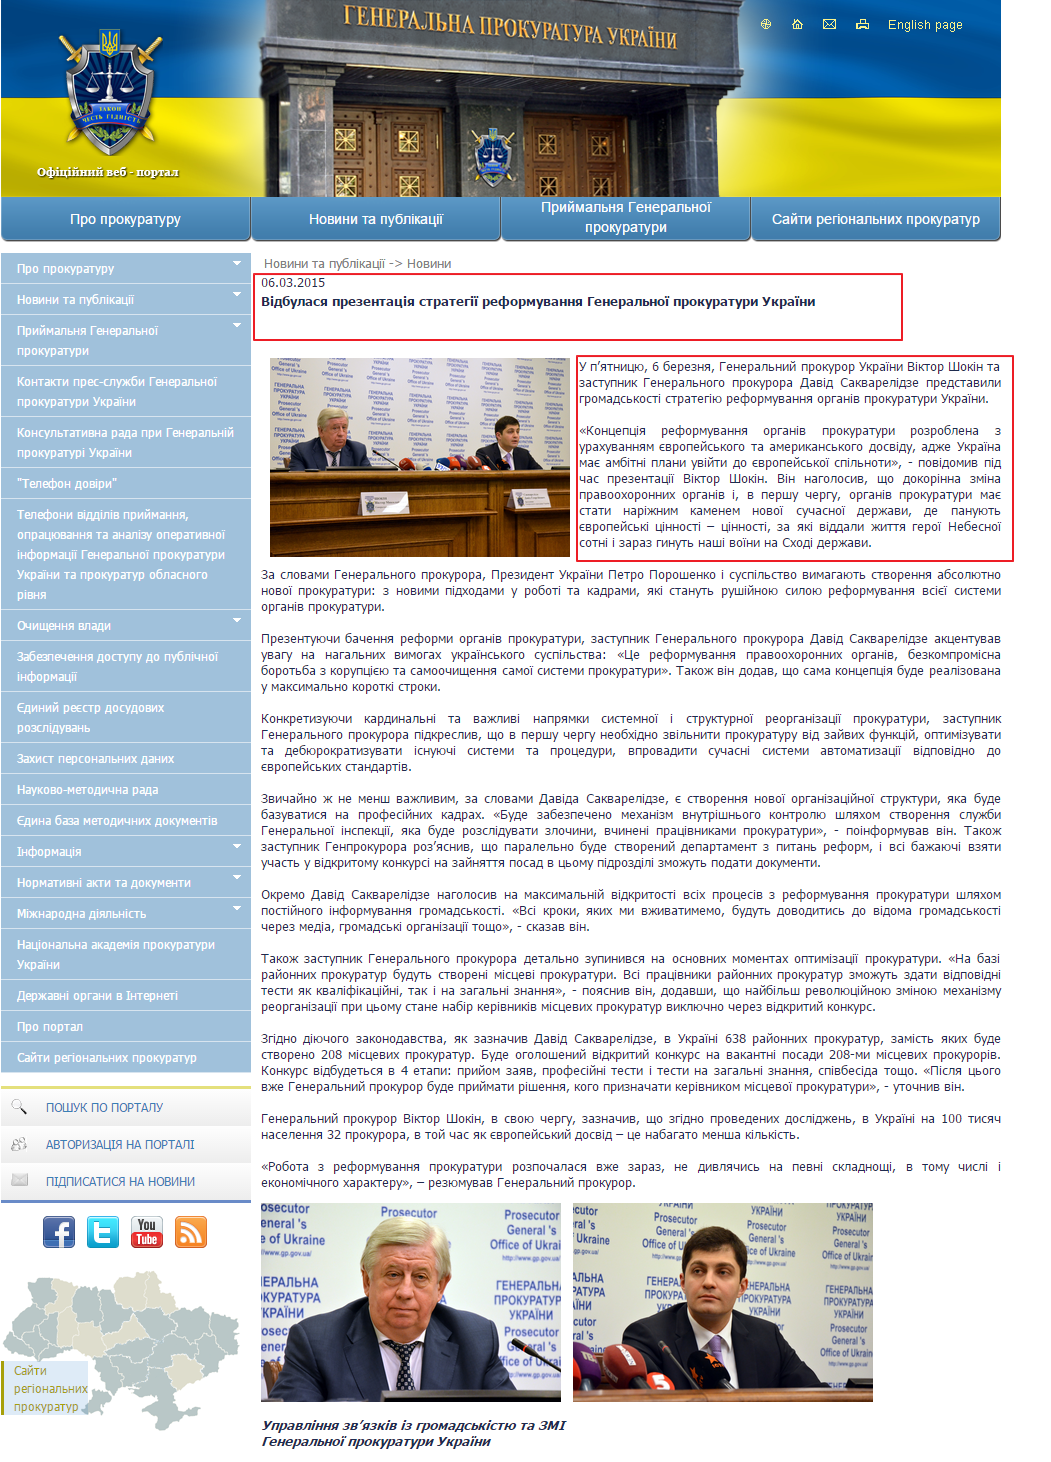 http://www.gp.gov.ua/ua/news.html?_m=publications&_c=view&_t=rec&id=152078